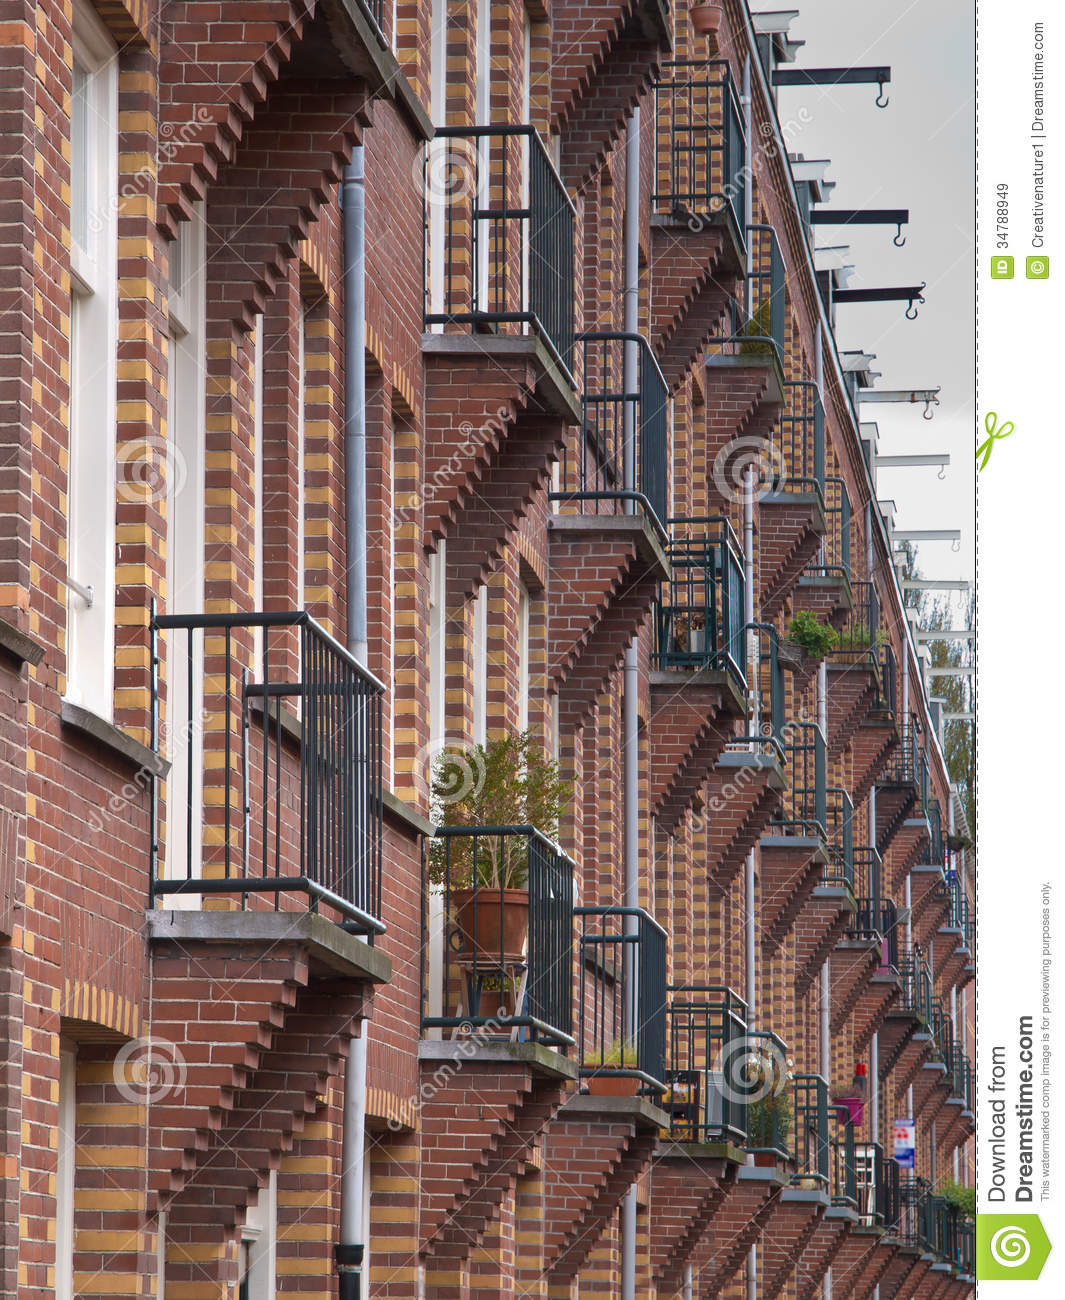 Apartment Wallpaper: Balcony Wallpaper Stock Image. Image Of Exterior, House